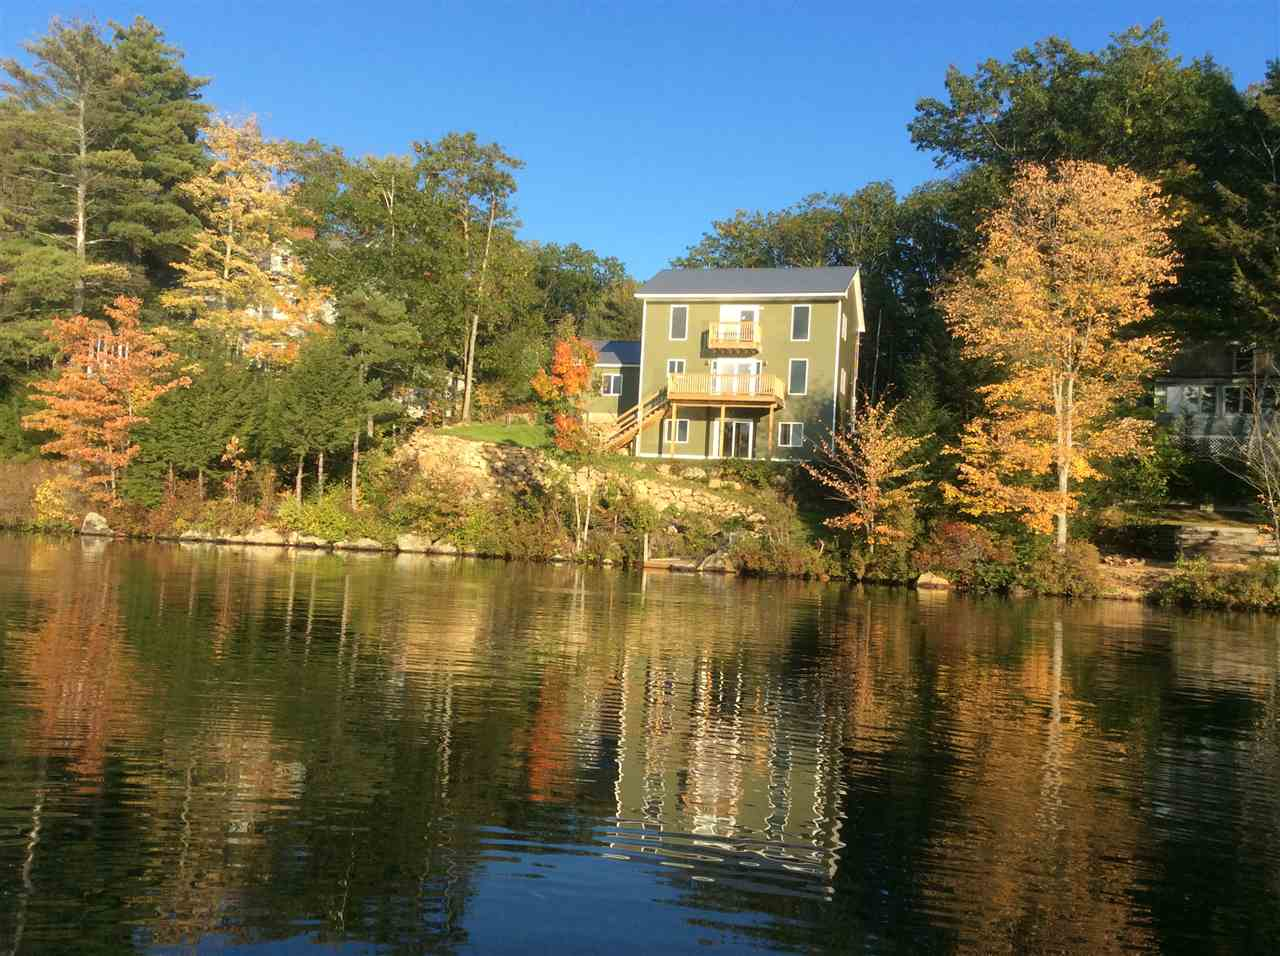 Pond Huntress waterfront home for sale in Barnstead